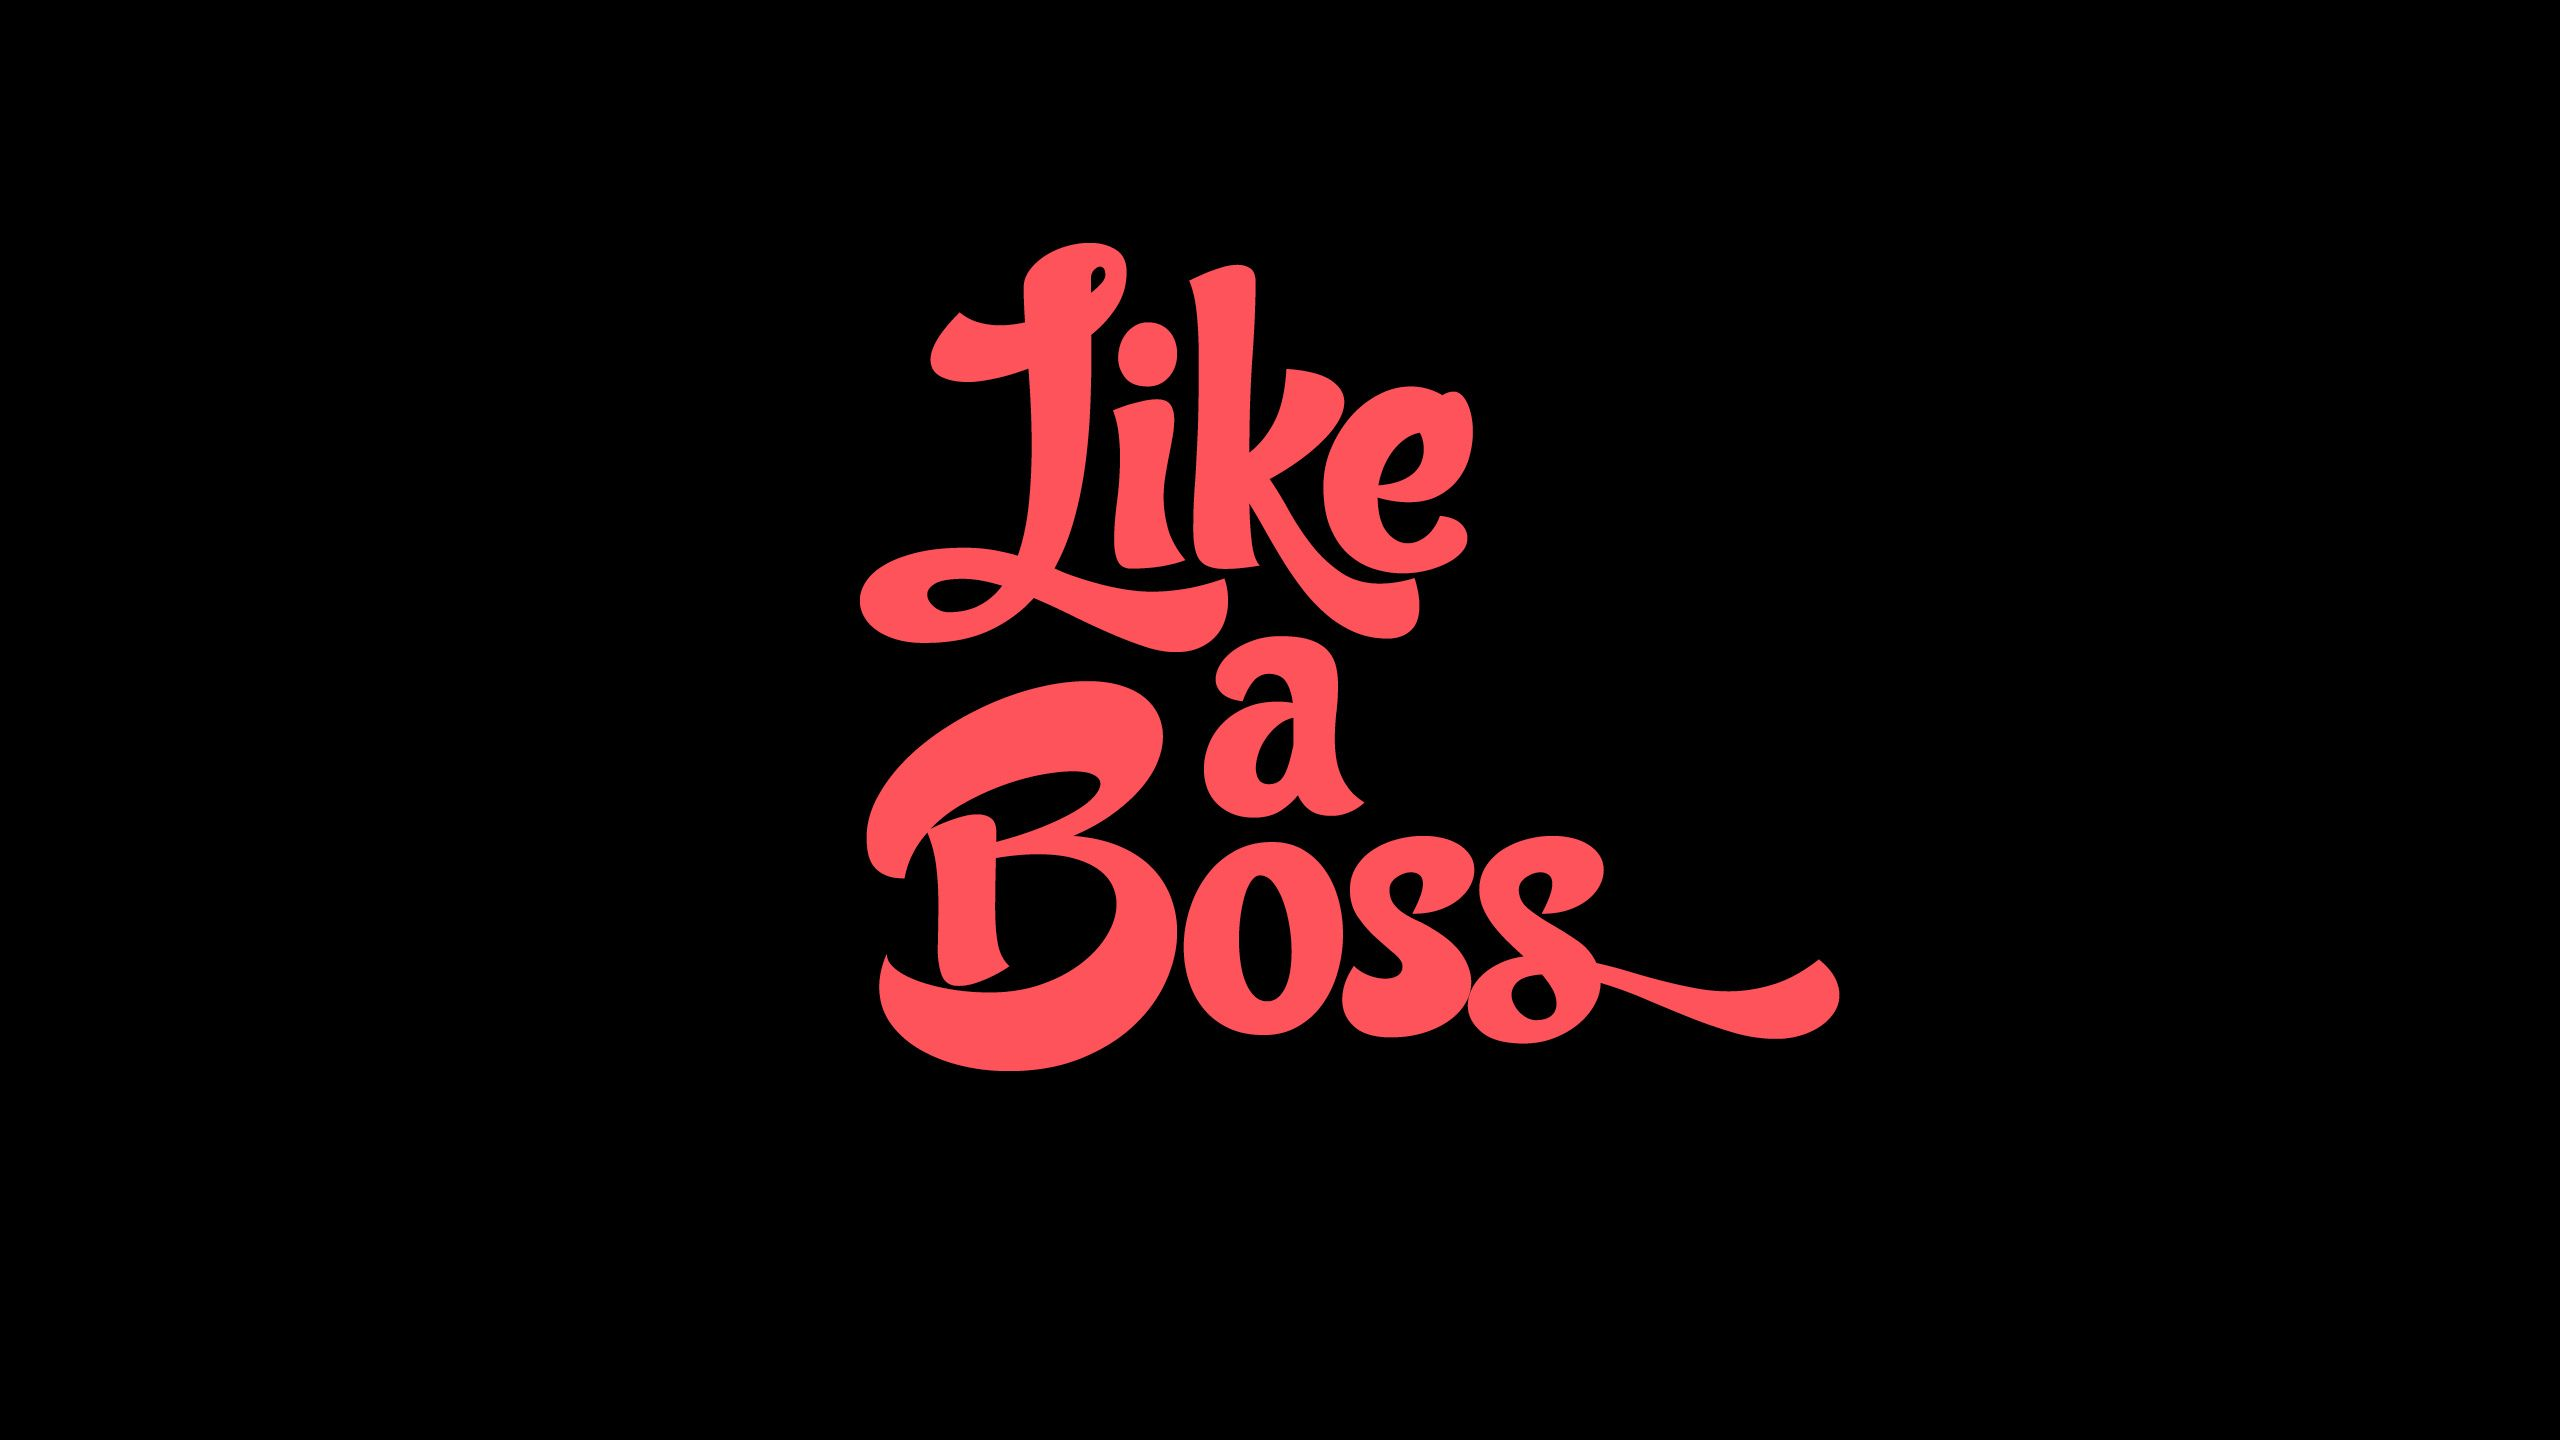 Boss Wallpapers   Top Boss Backgrounds   WallpaperAccess 2560x1440